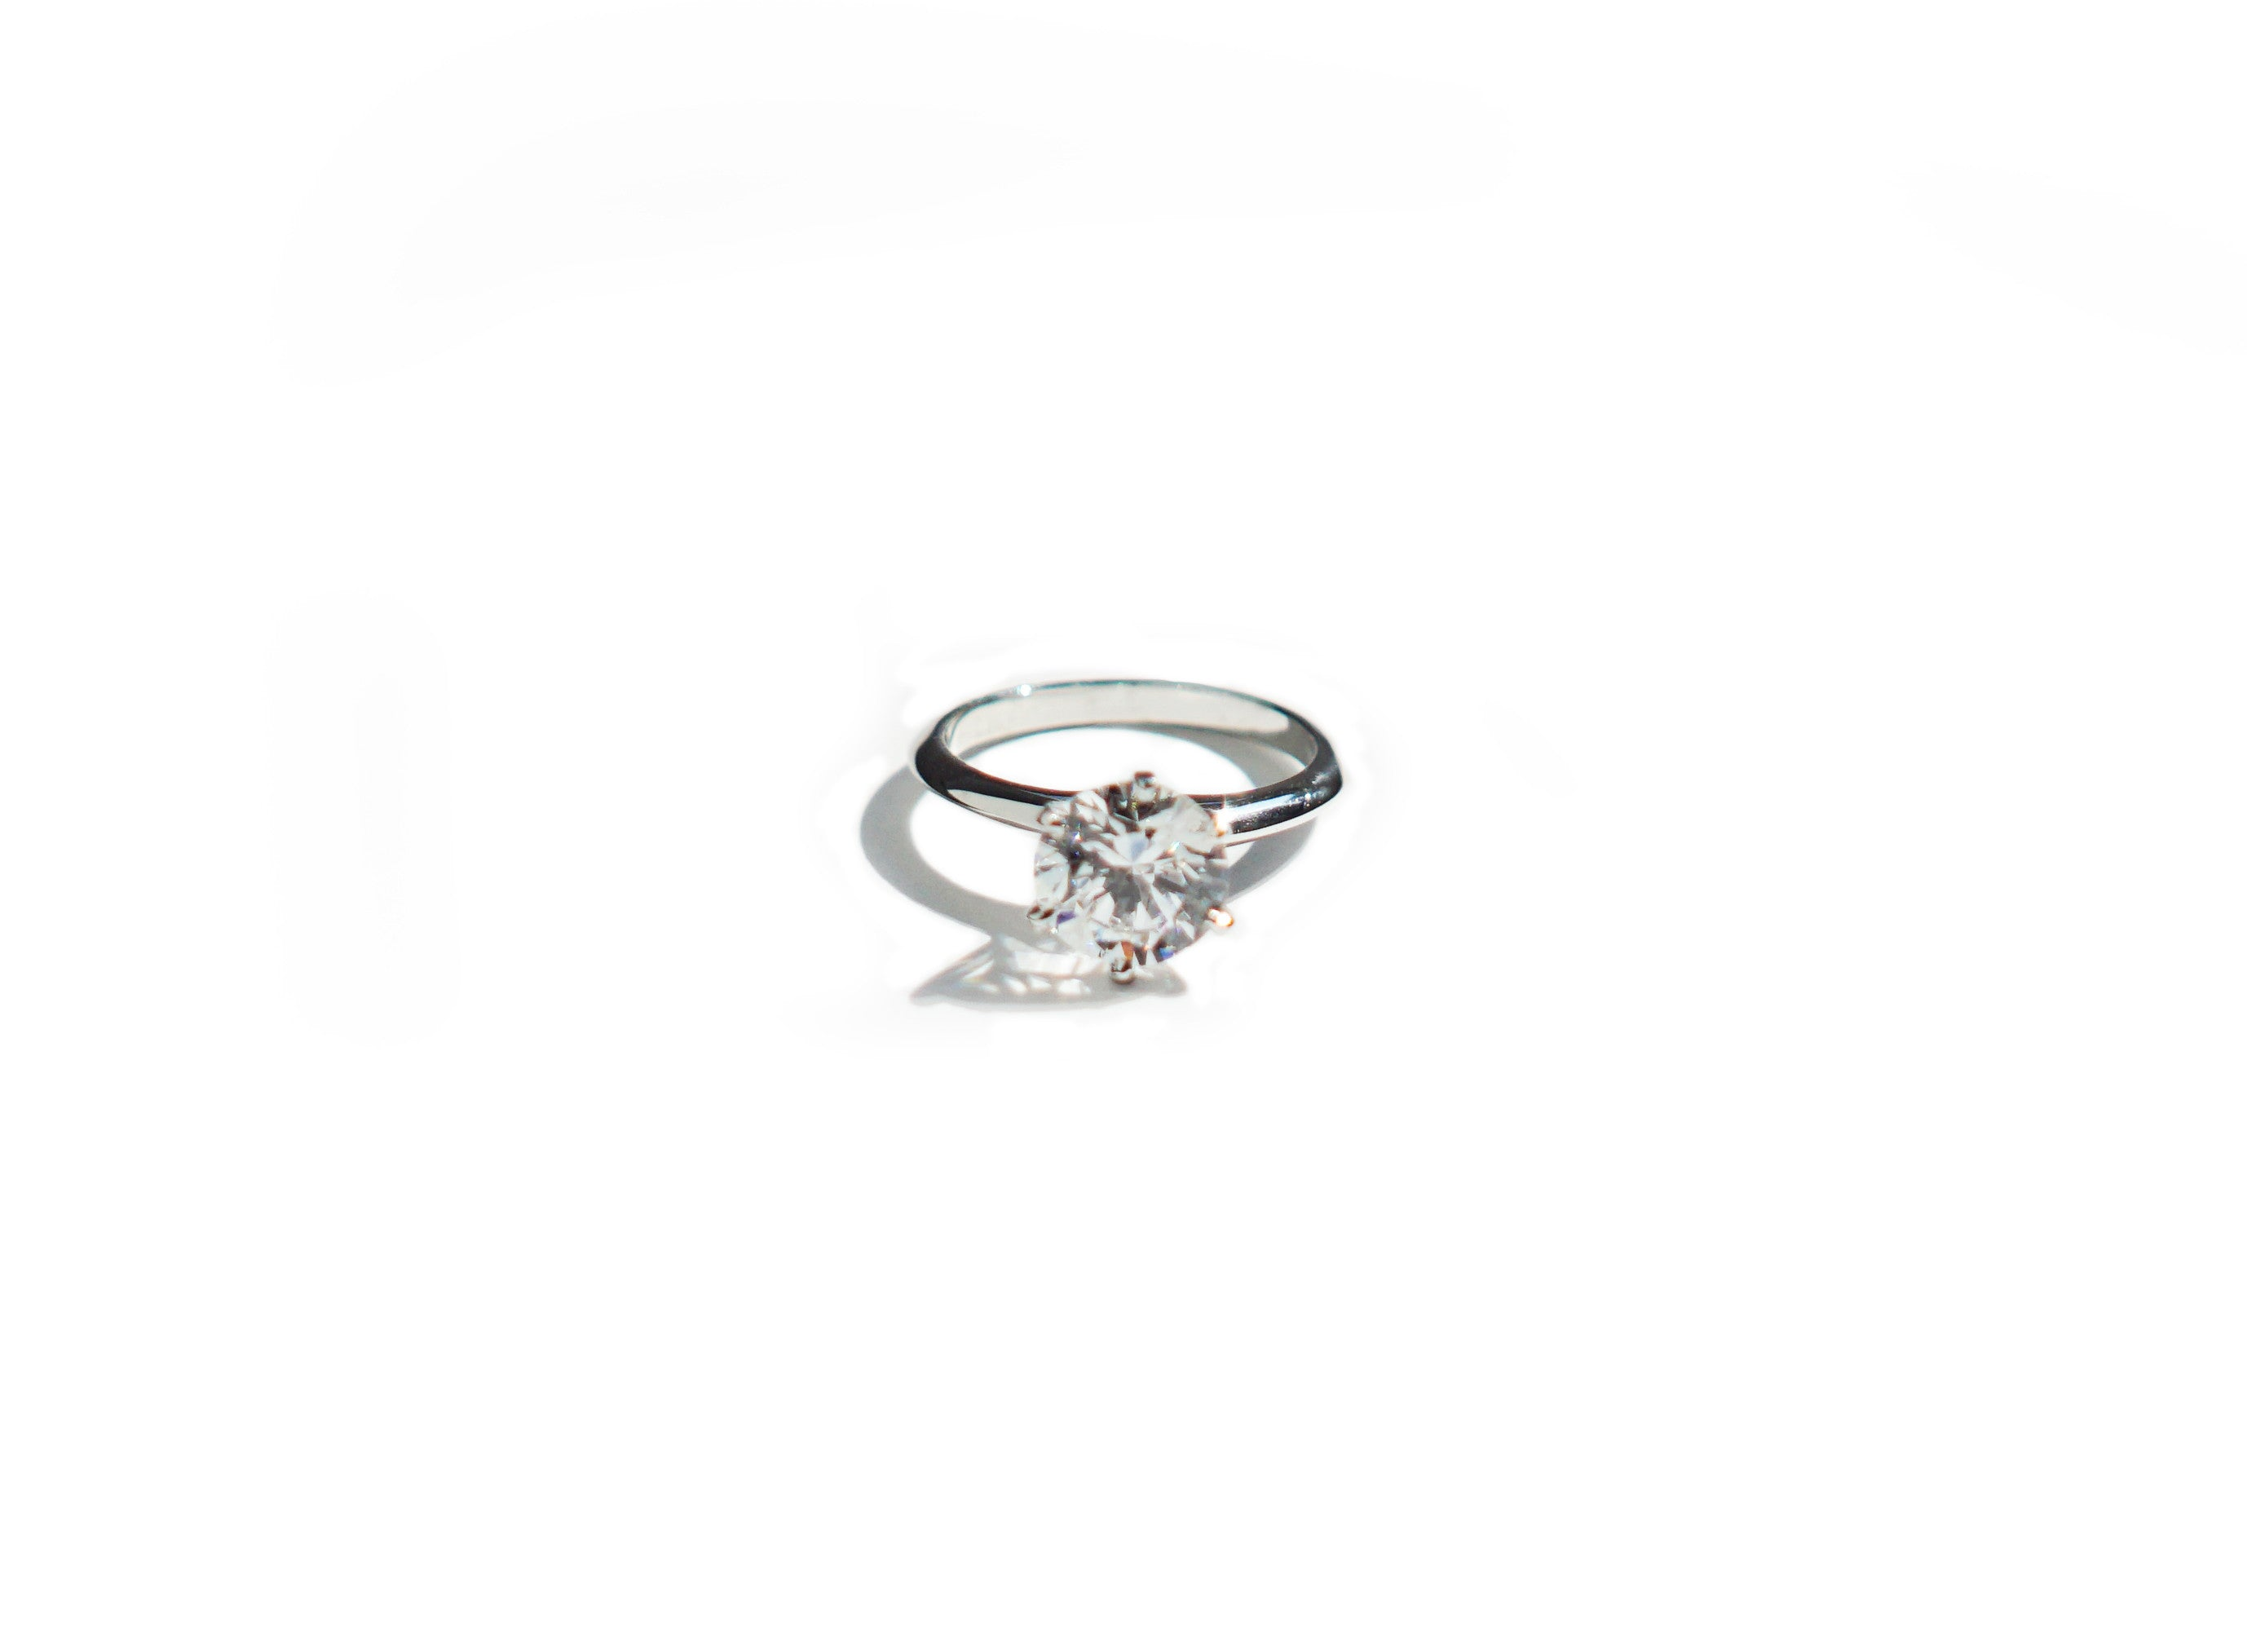 carat jewellry engagement round website hand on rings weddingbee ring diamond beautiful prong s